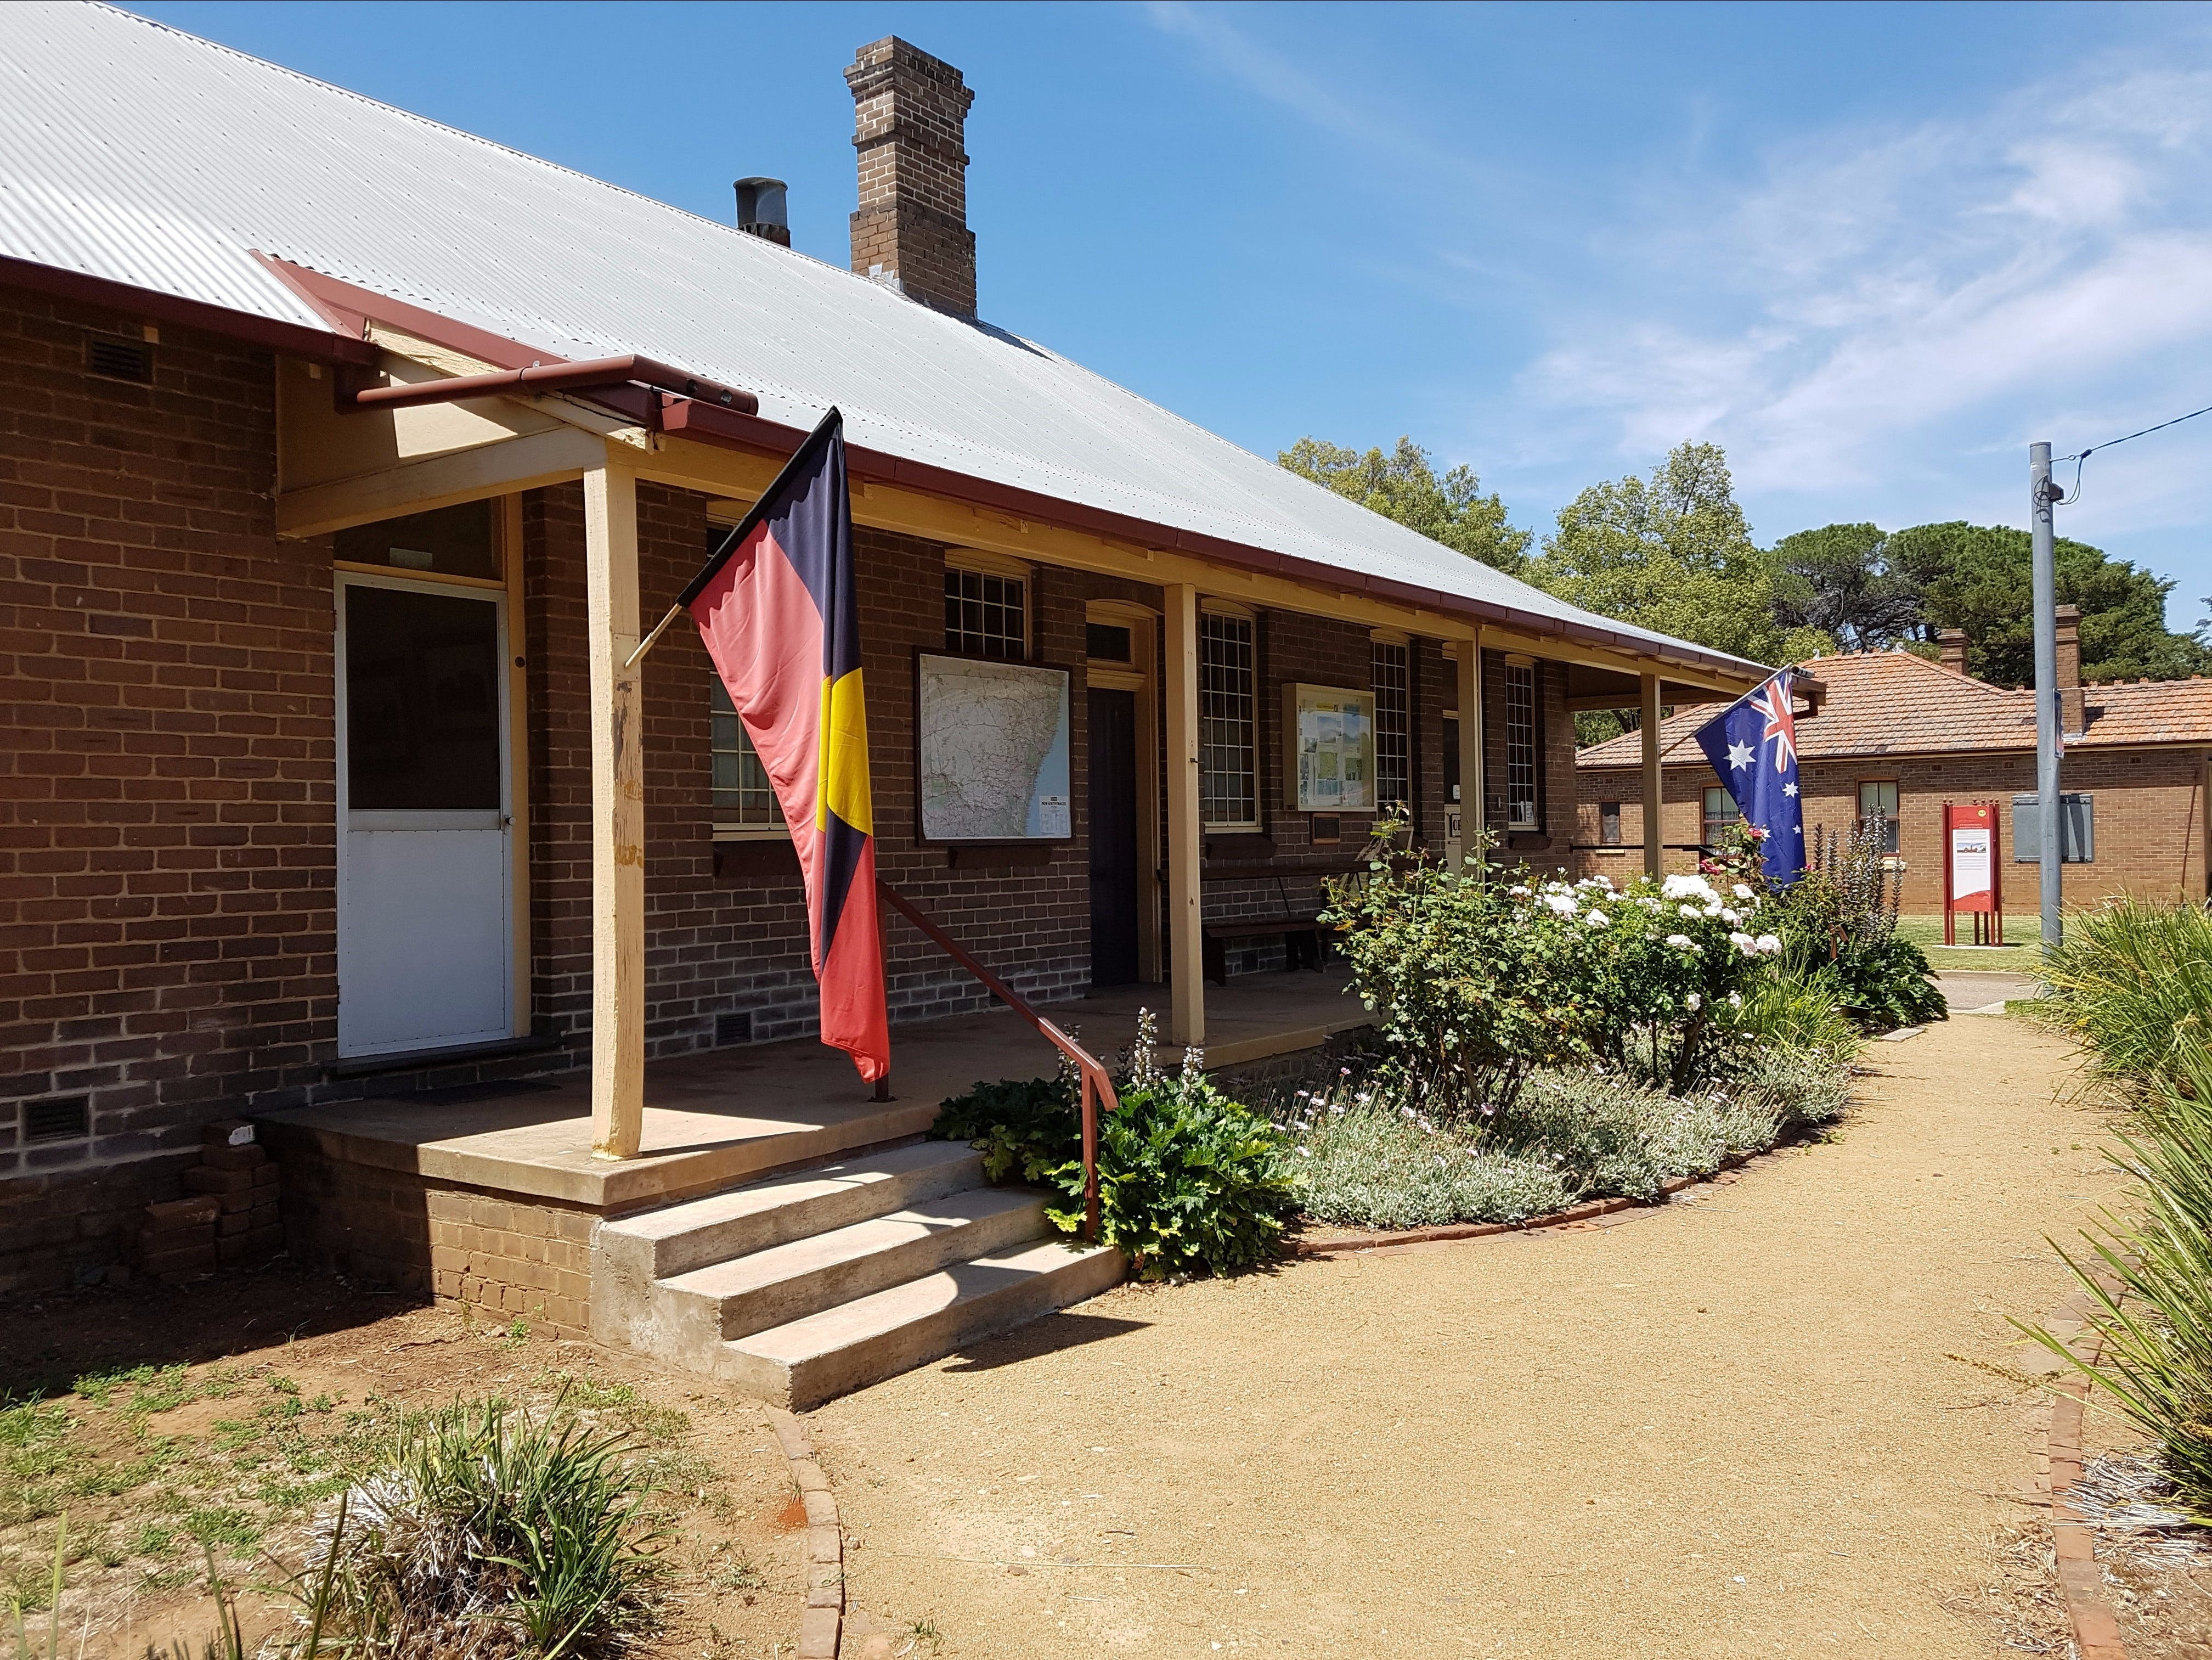 Cootamundra Visitor Information Centre and Heritage Centre - Broome Tourism